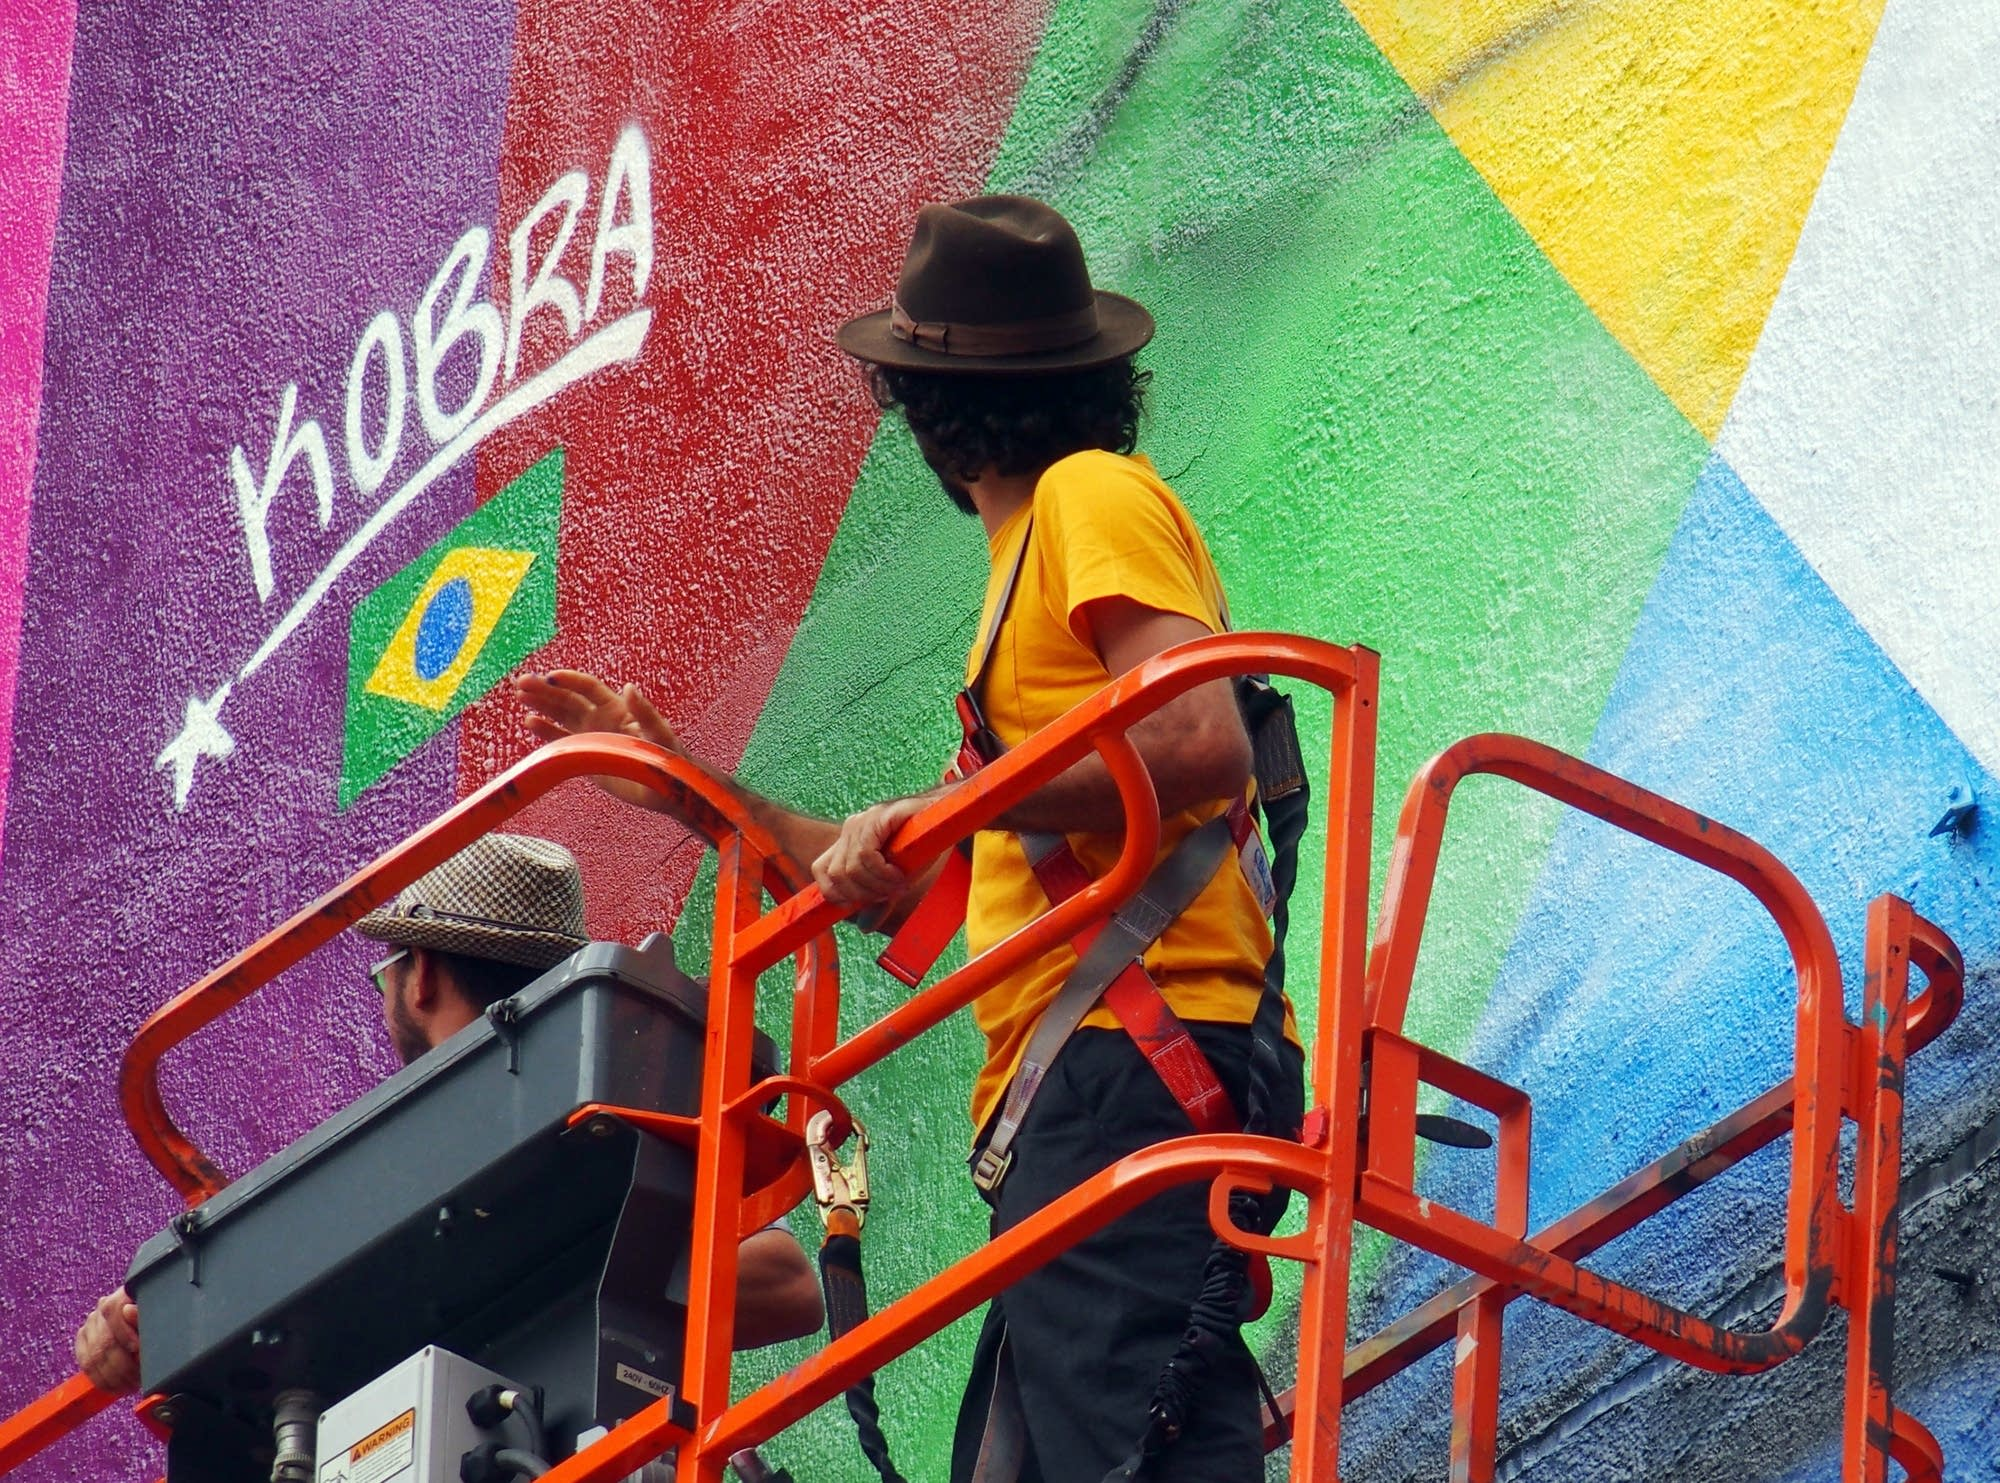 Eduardo Kobra looked up at his signature.